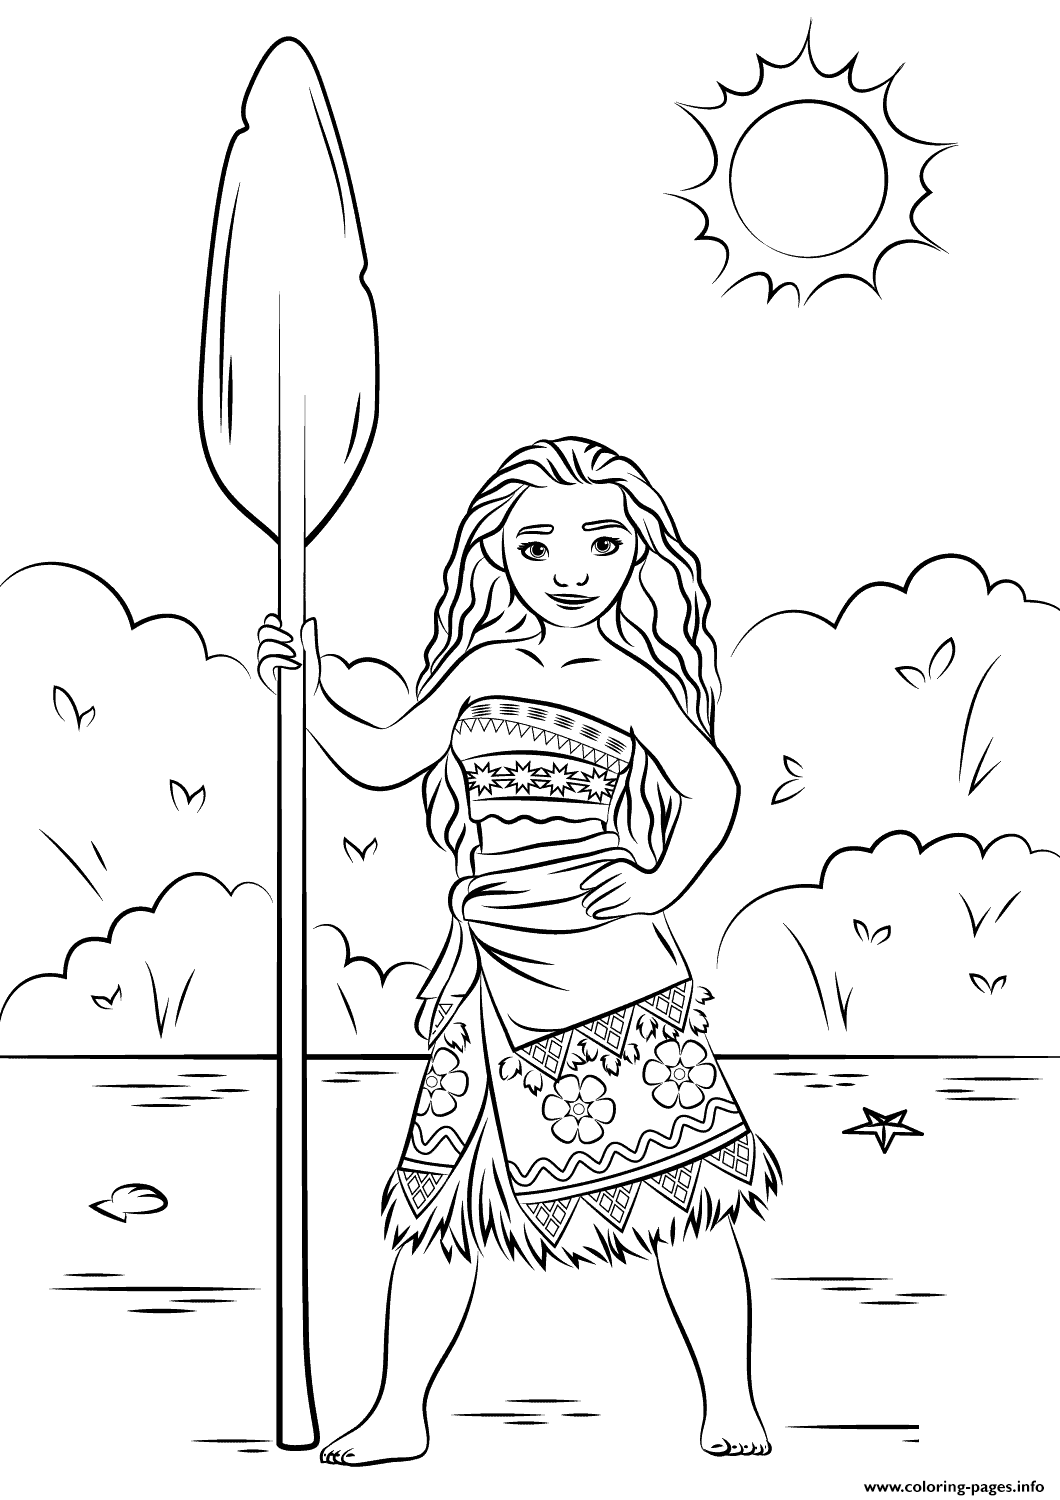 Print princess moana disney coloring pages | Pretty Papers